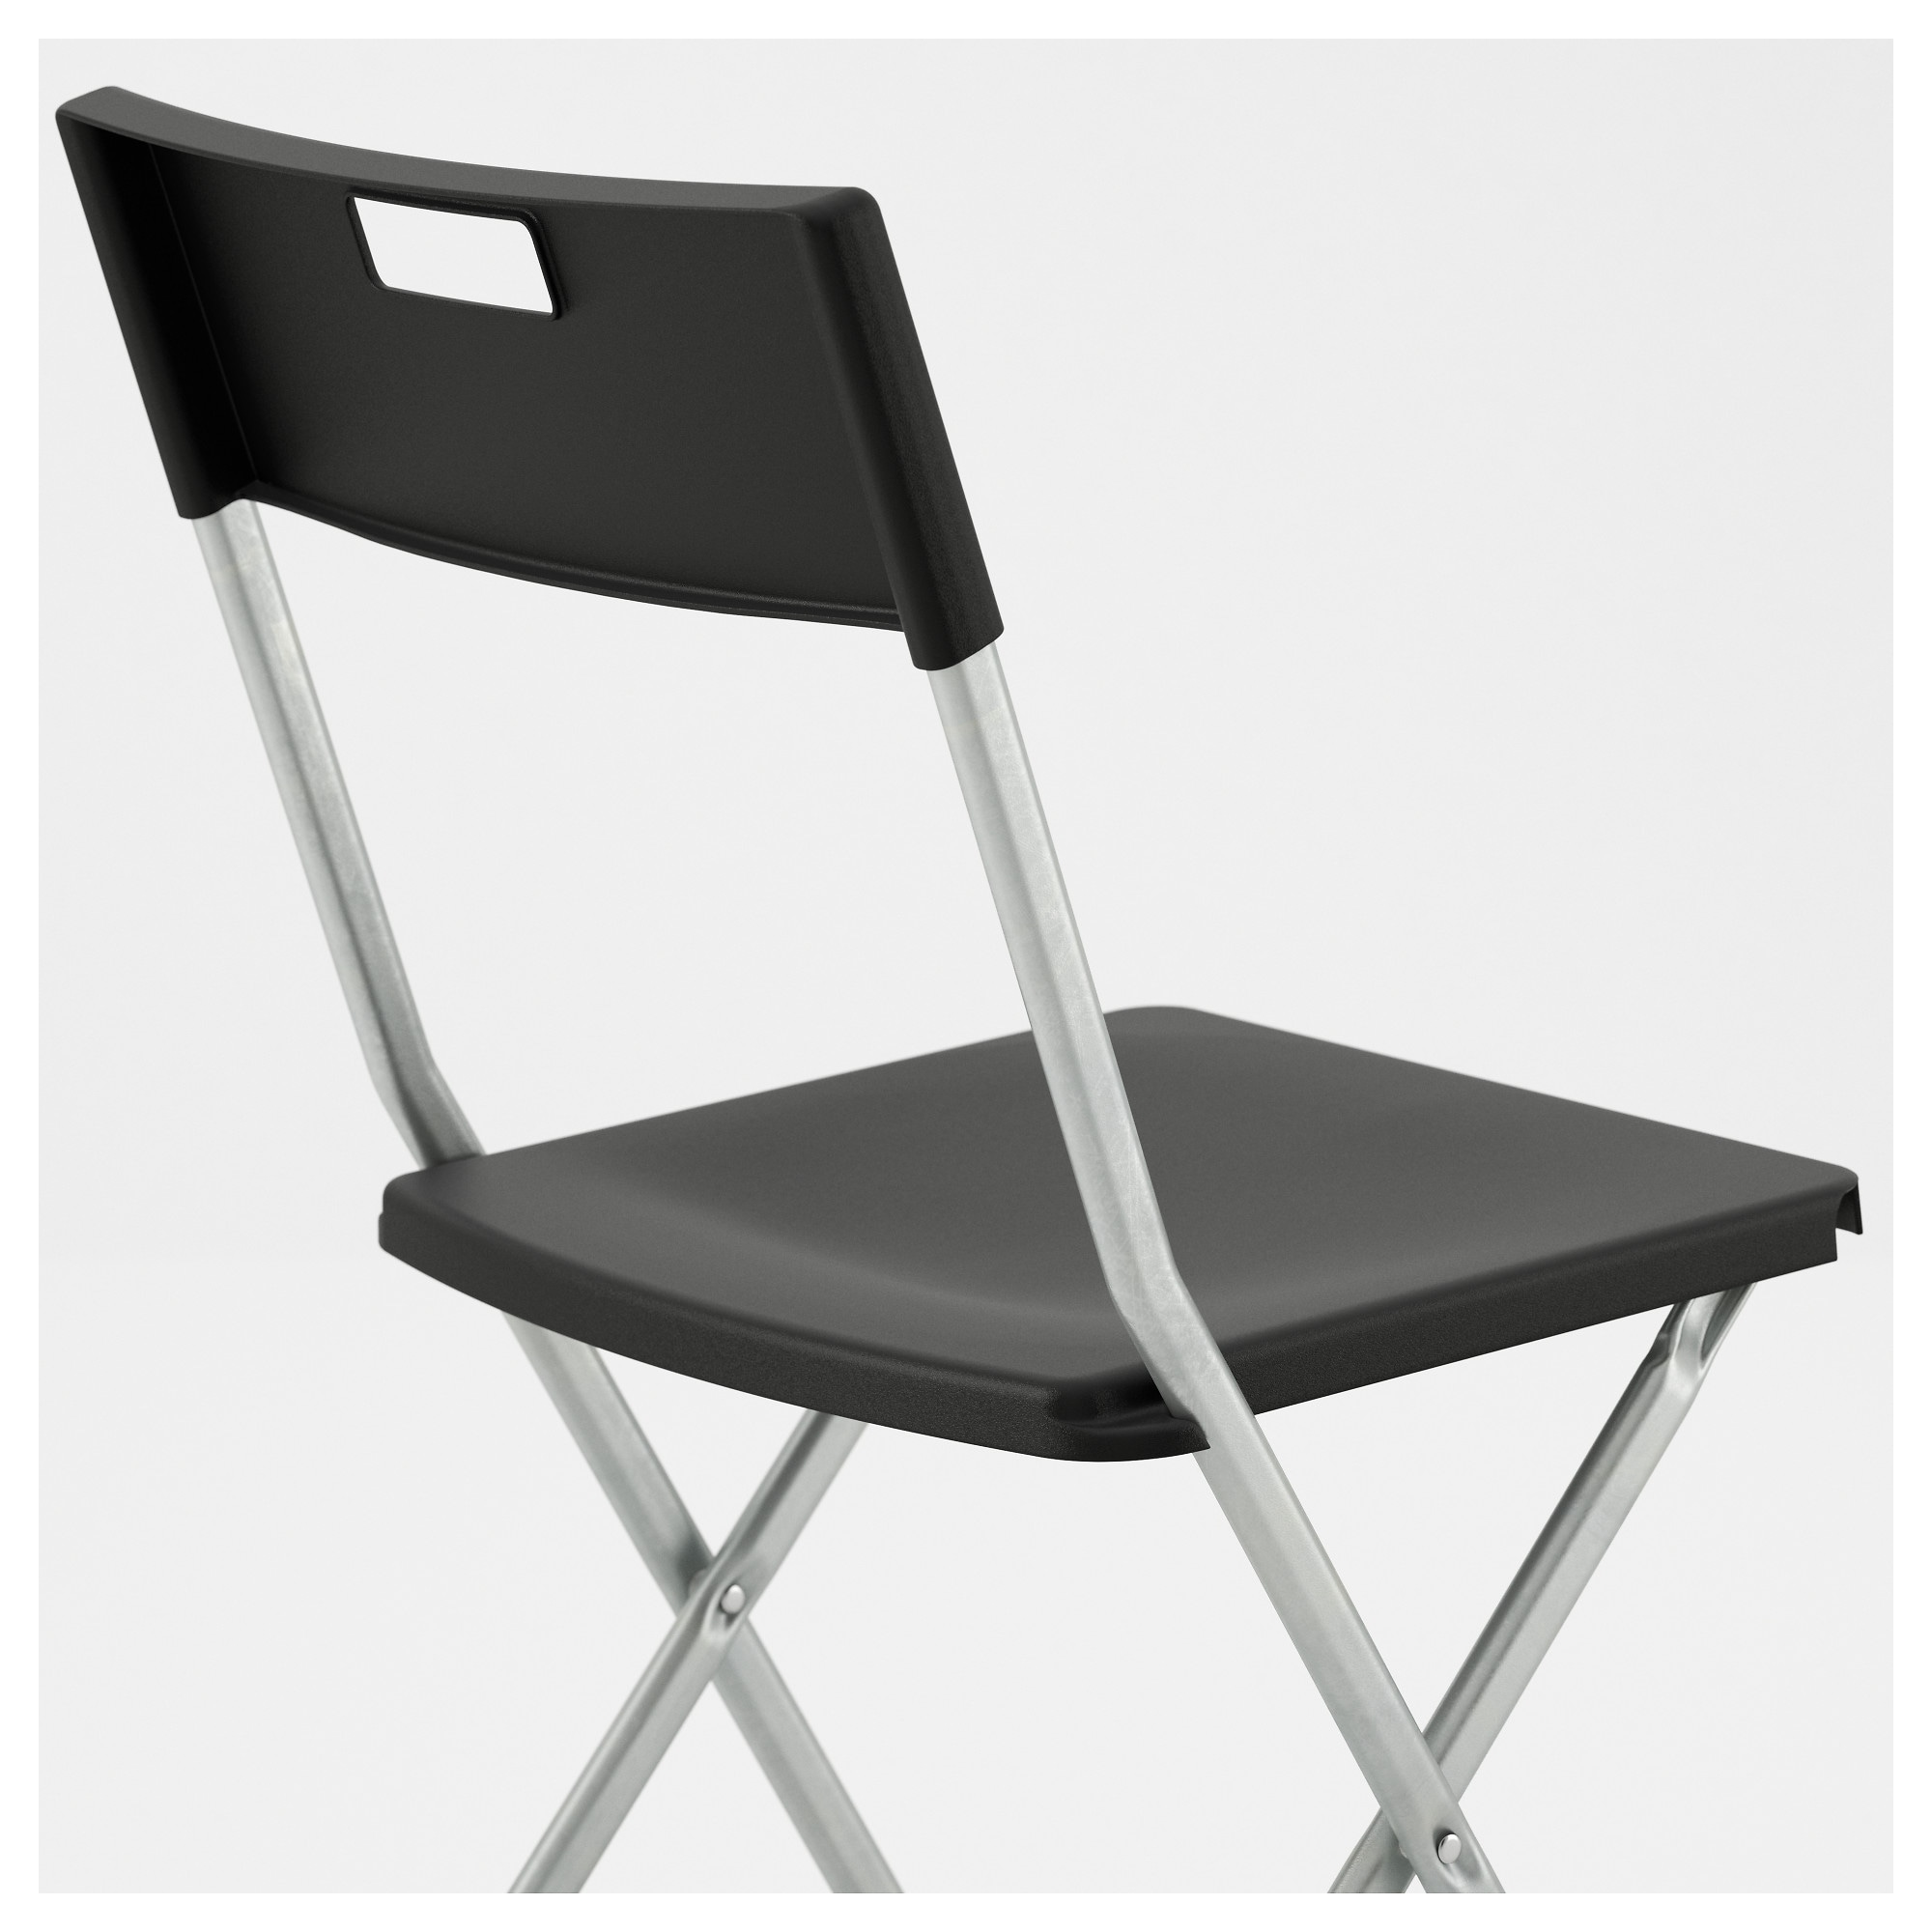 GUNDE Folding Chair IKEA - Collapsible chairs